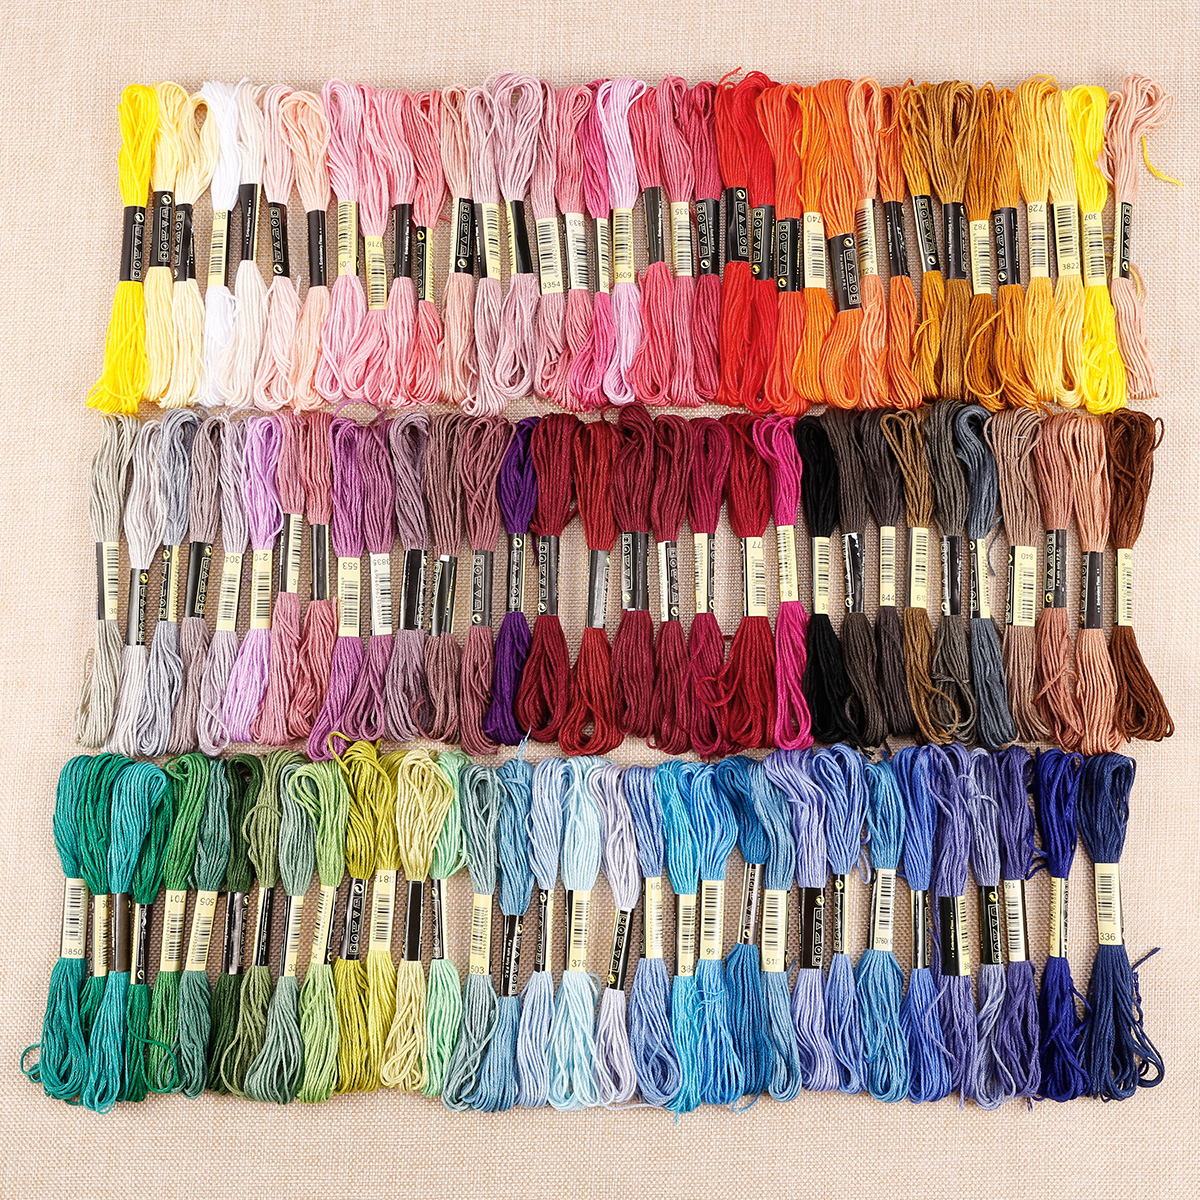 50-300-Color-Cross-Stitch-Thread-Embroidery-Floss-Sewing-Skeins-100-Cotton-Line thumbnail 14